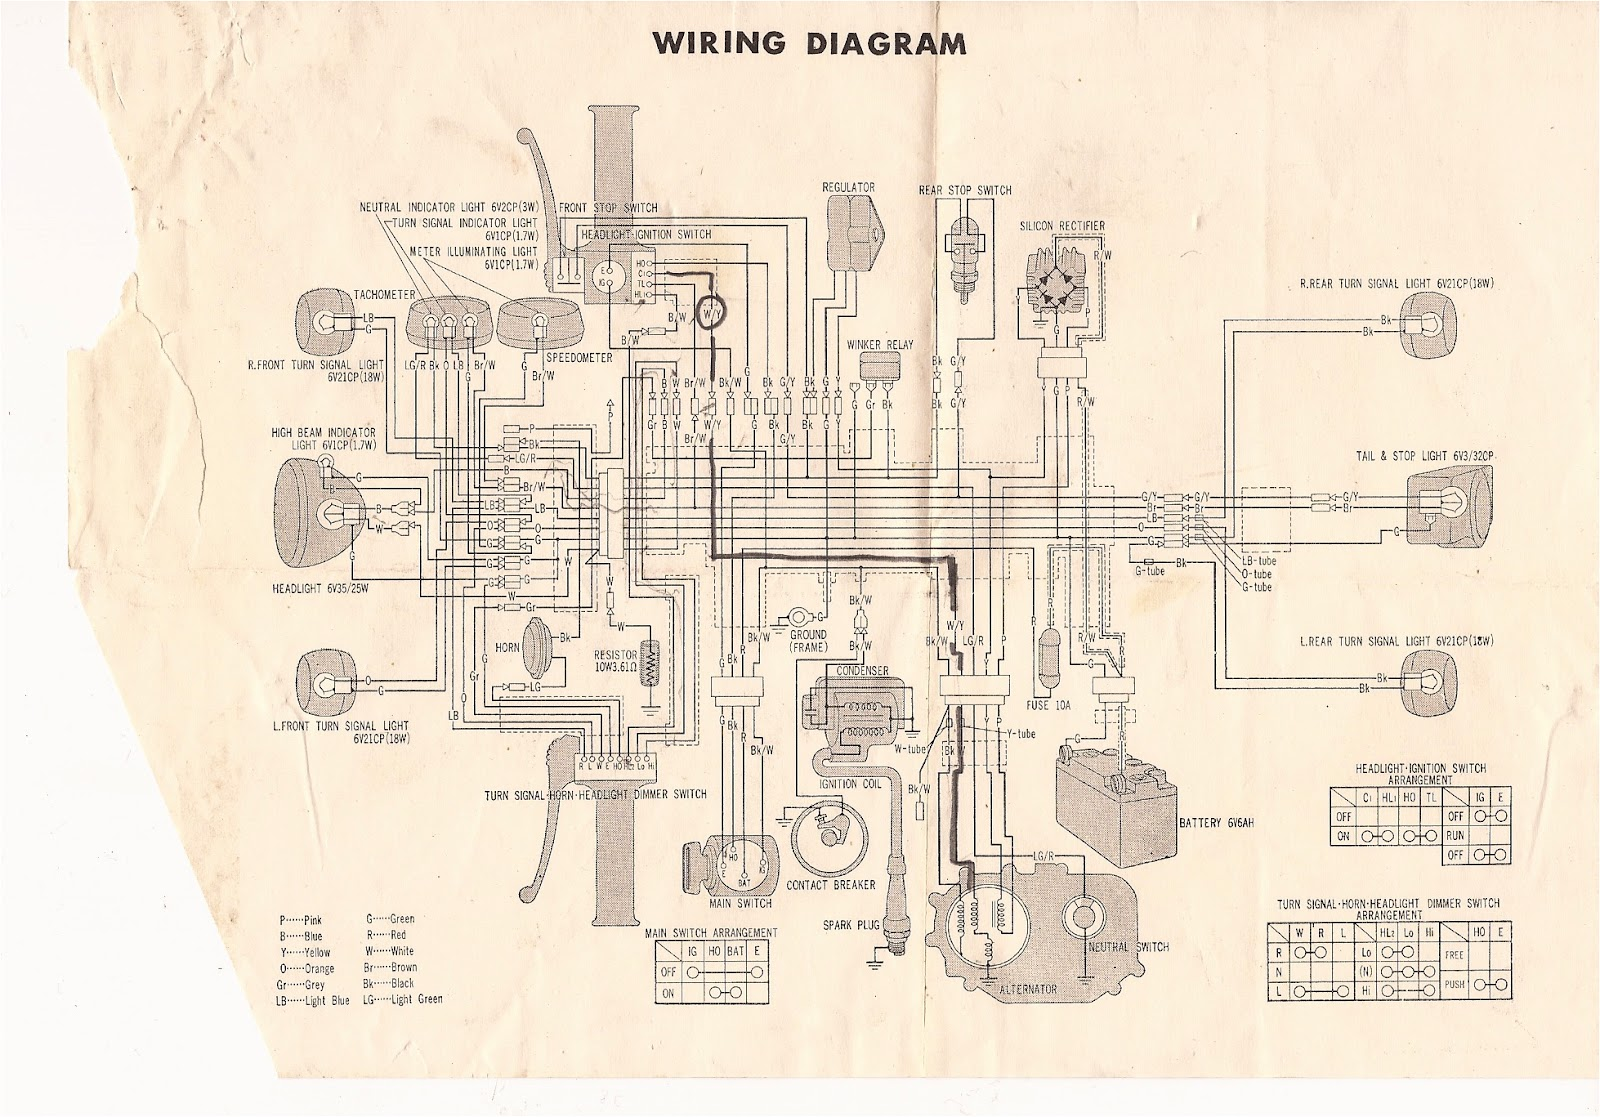 1974 honda xl 125 wiring diagram fxd mhcarsalederry uk \u20221974 honda xl 125 wiring diagram 1974 free engine image honda 125 motorcycle 1973 honda xl